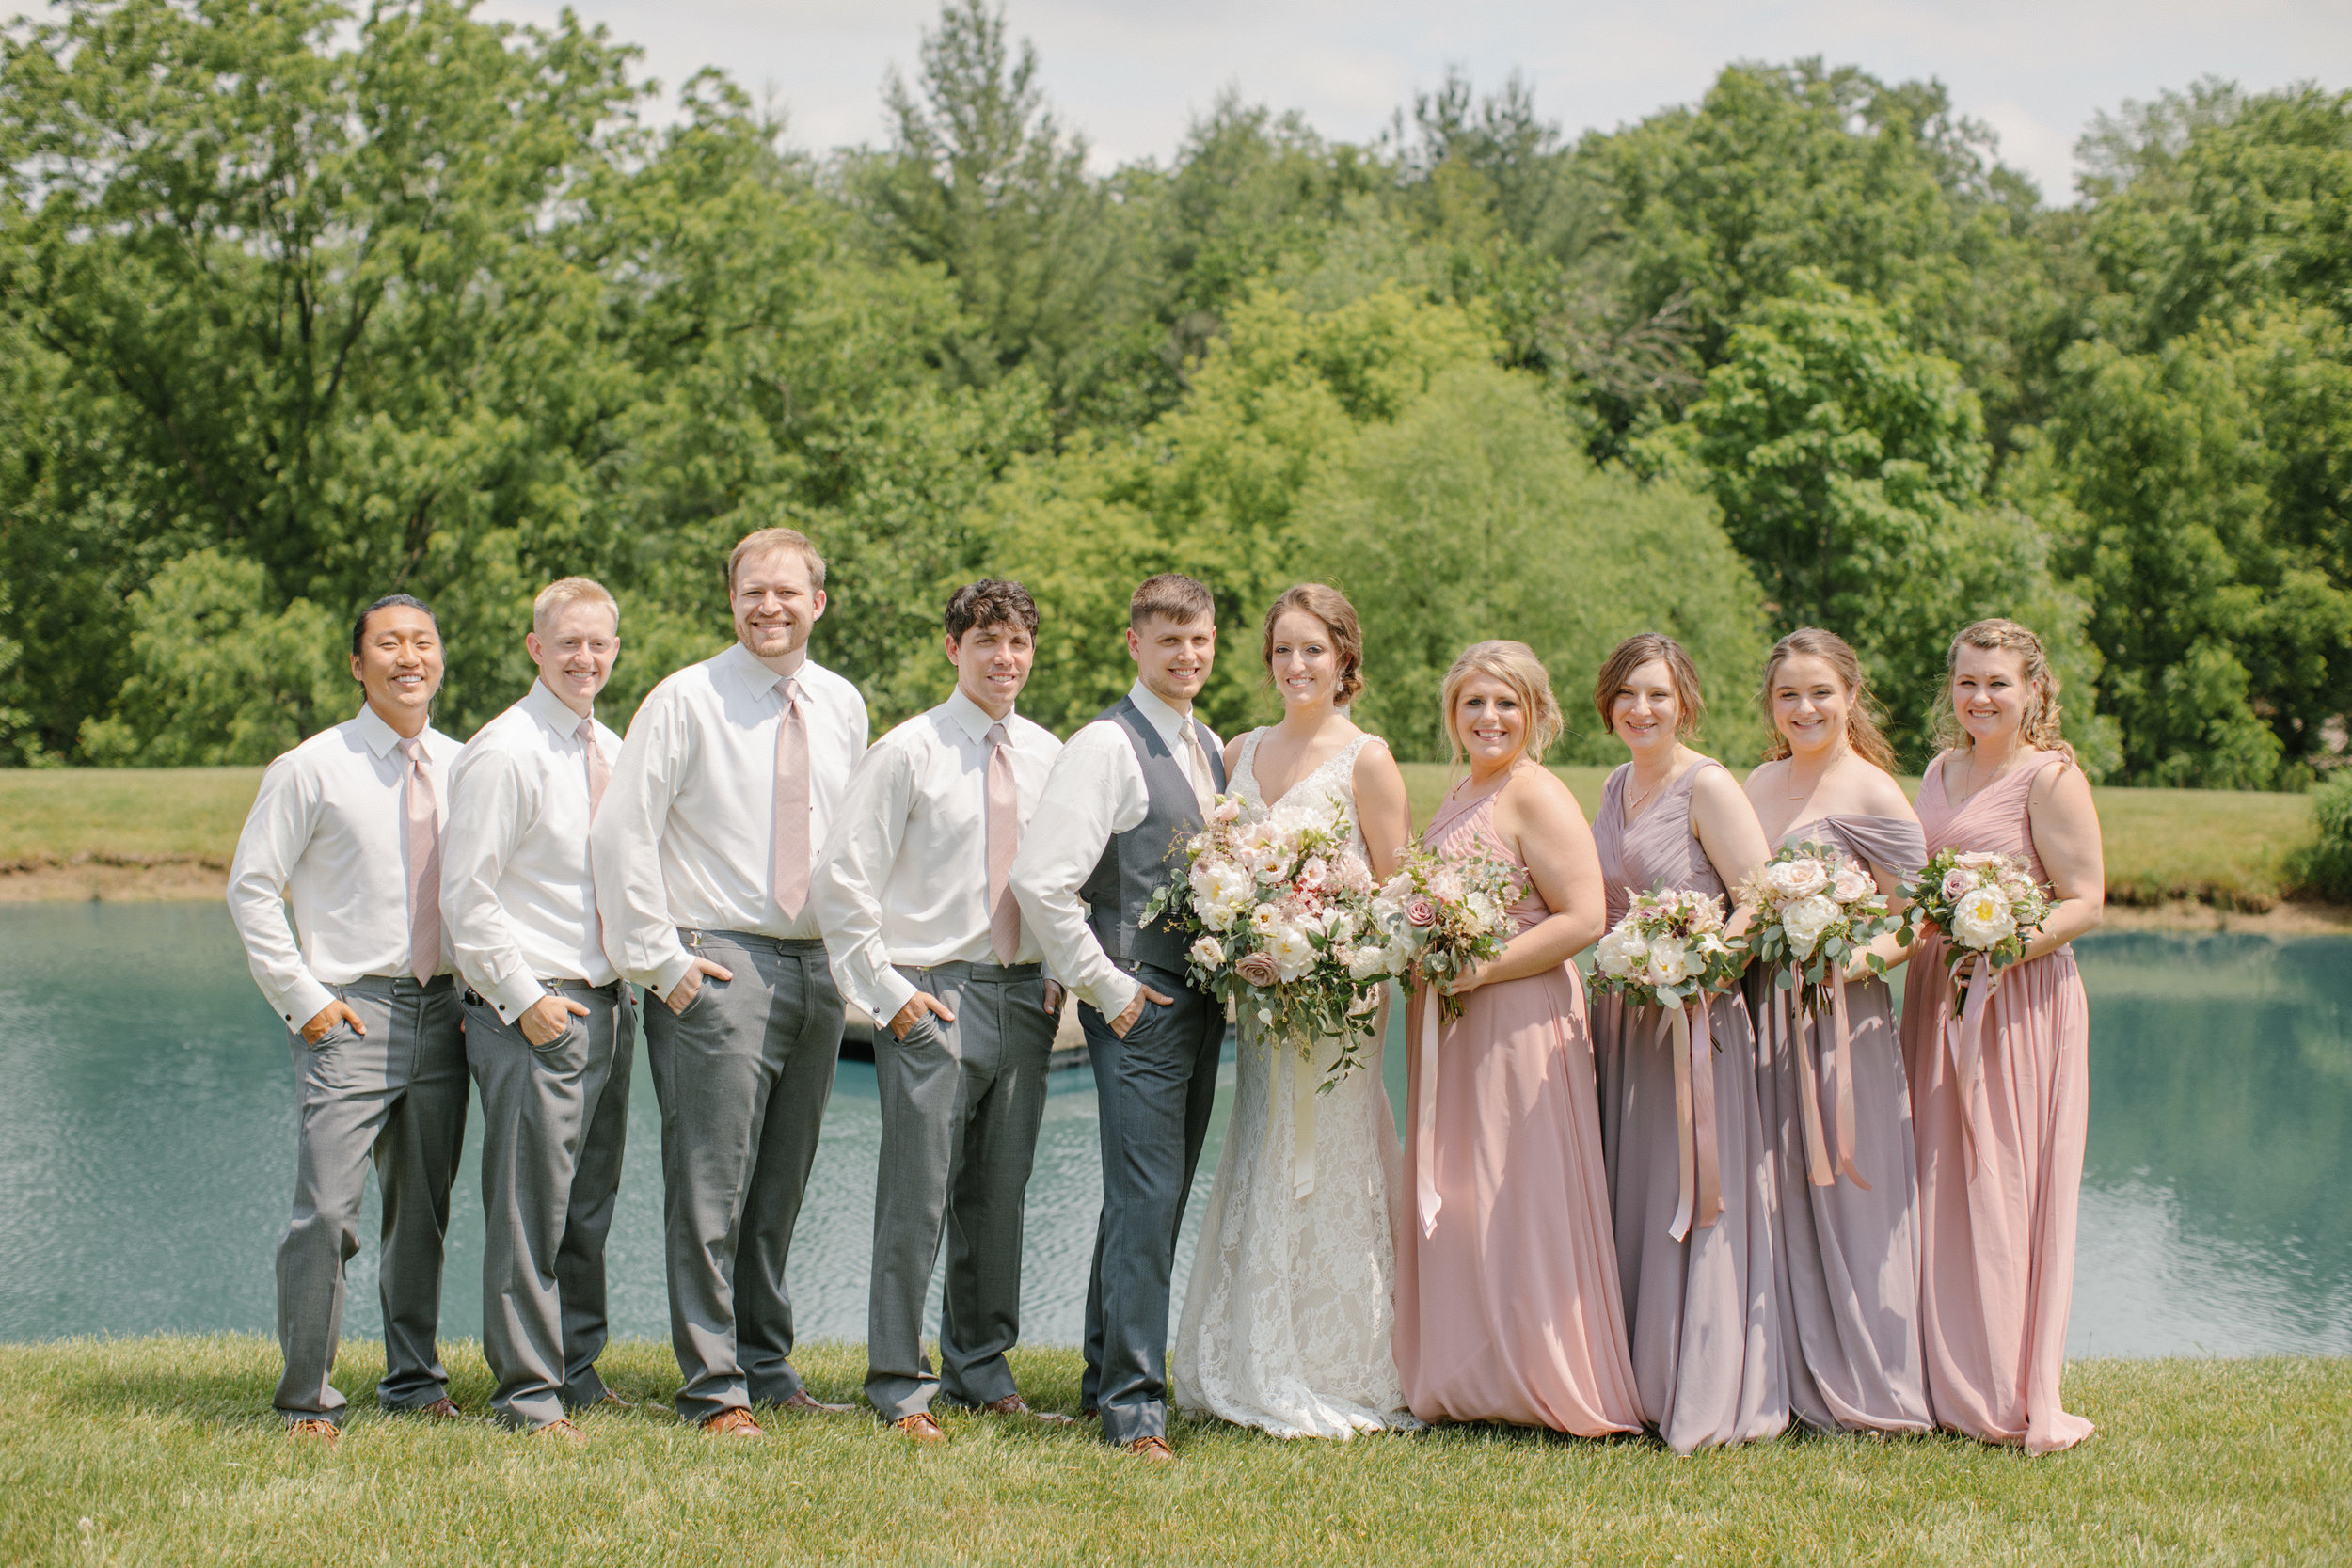 bridal party wedding photos pella iowa pink and purple dresses